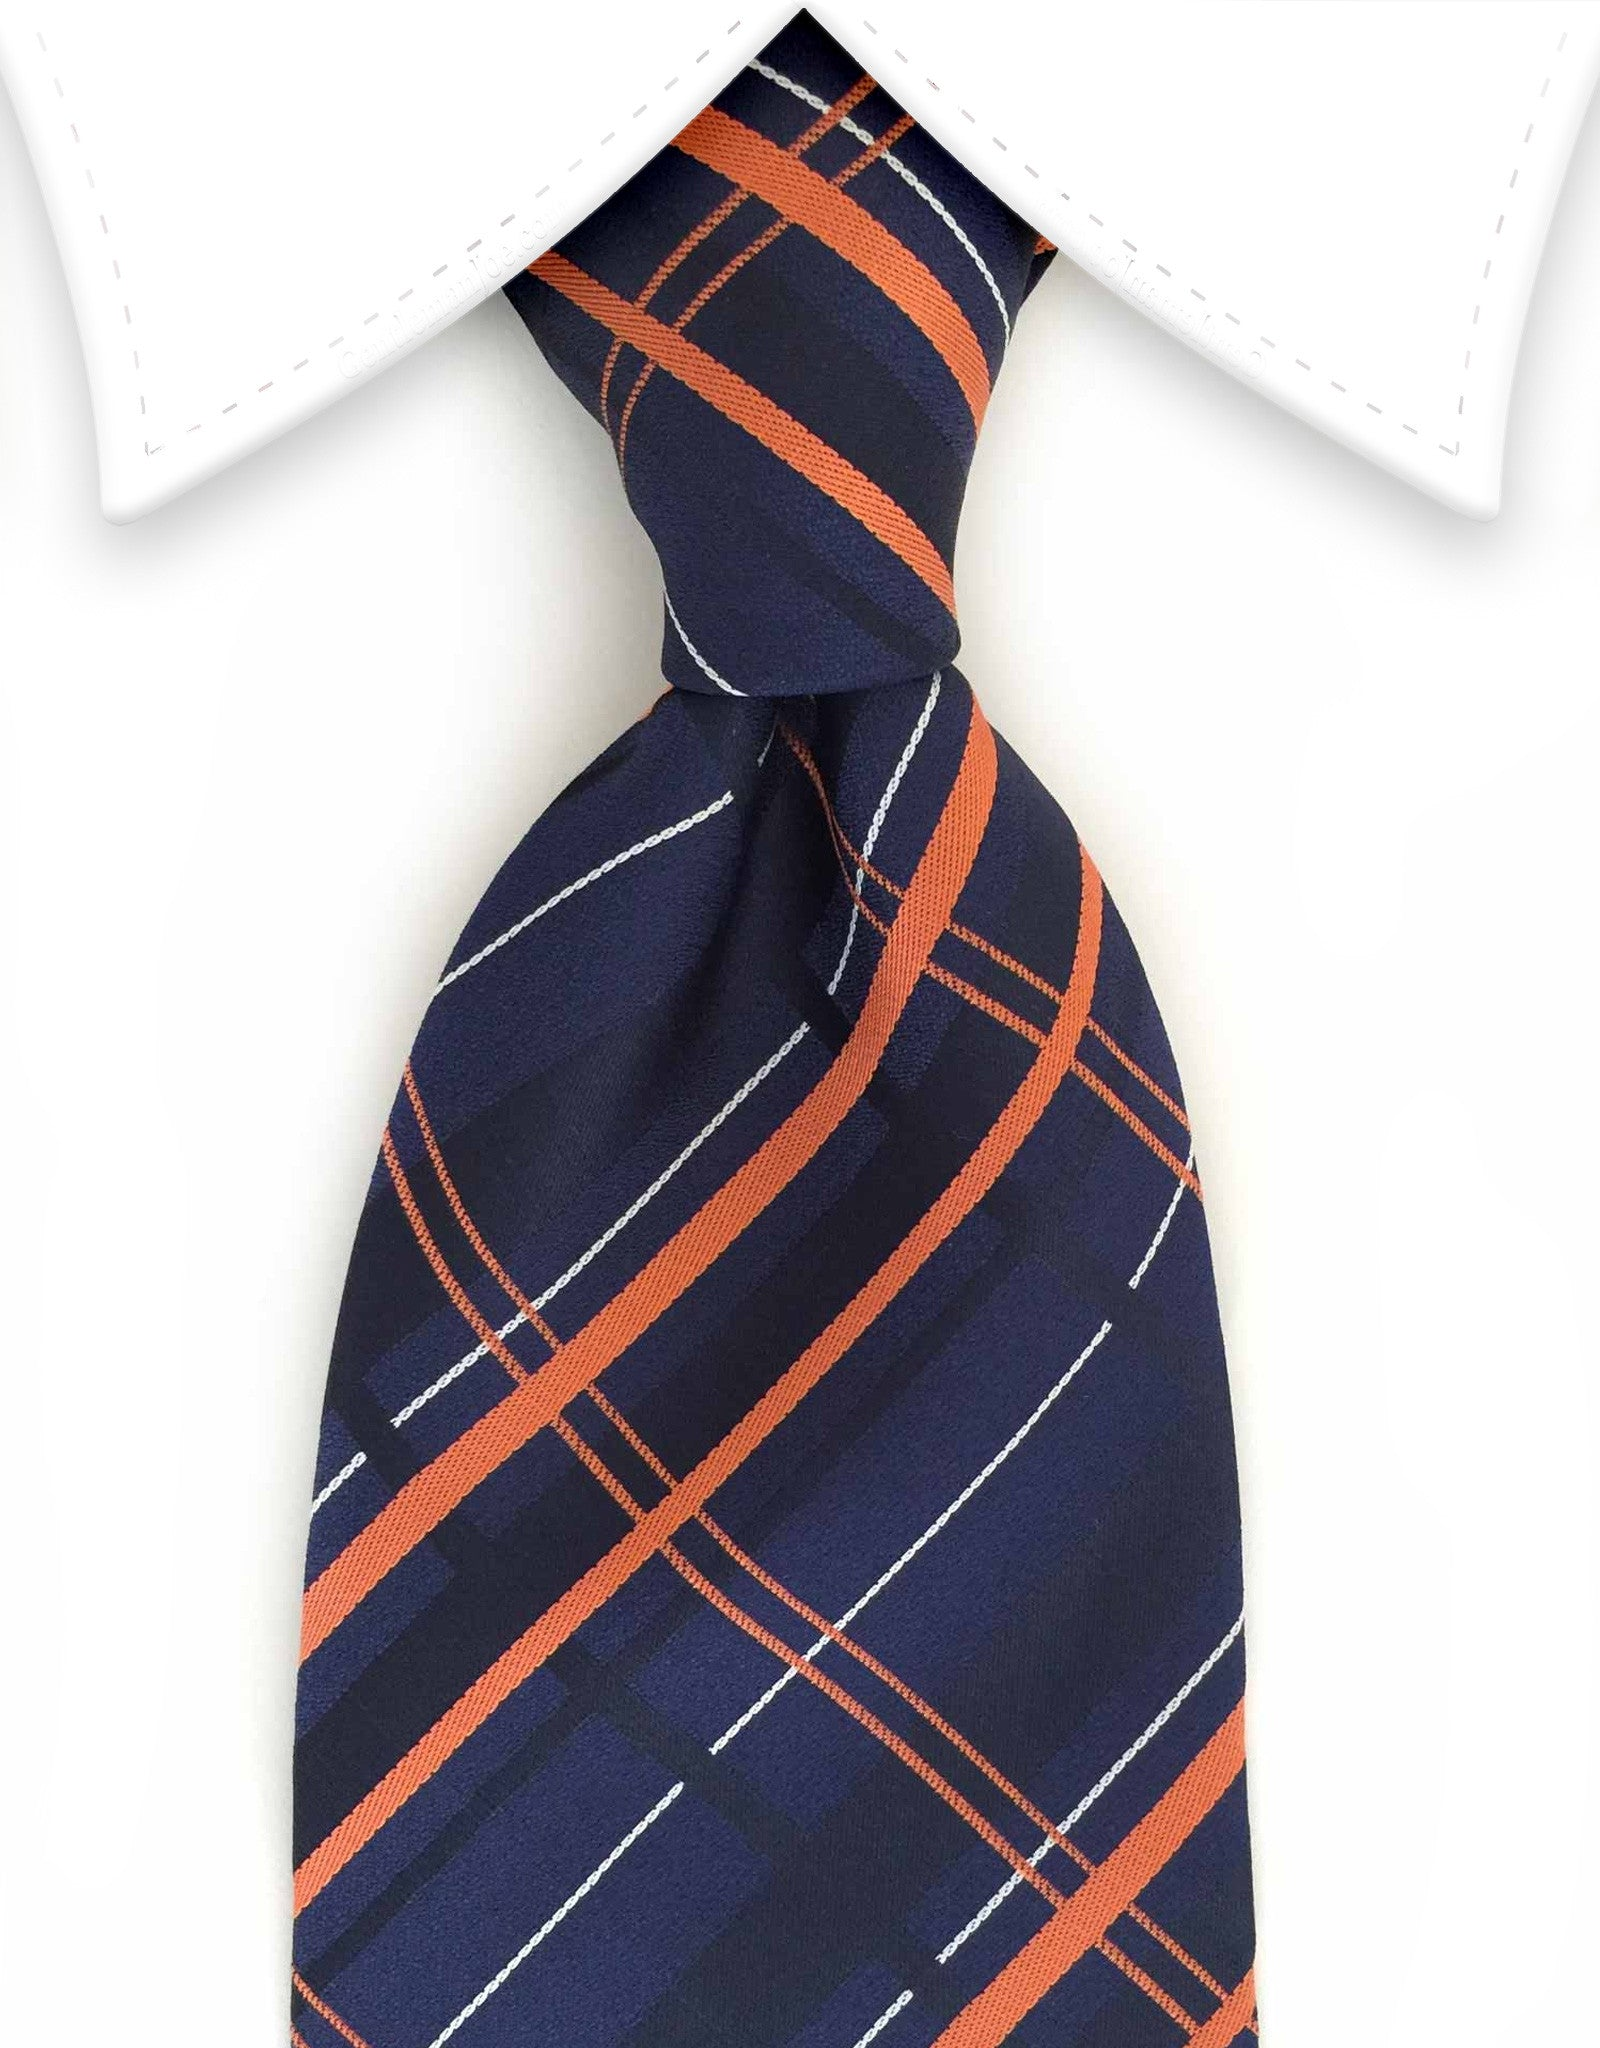 Navy blue and orange plaid necktie